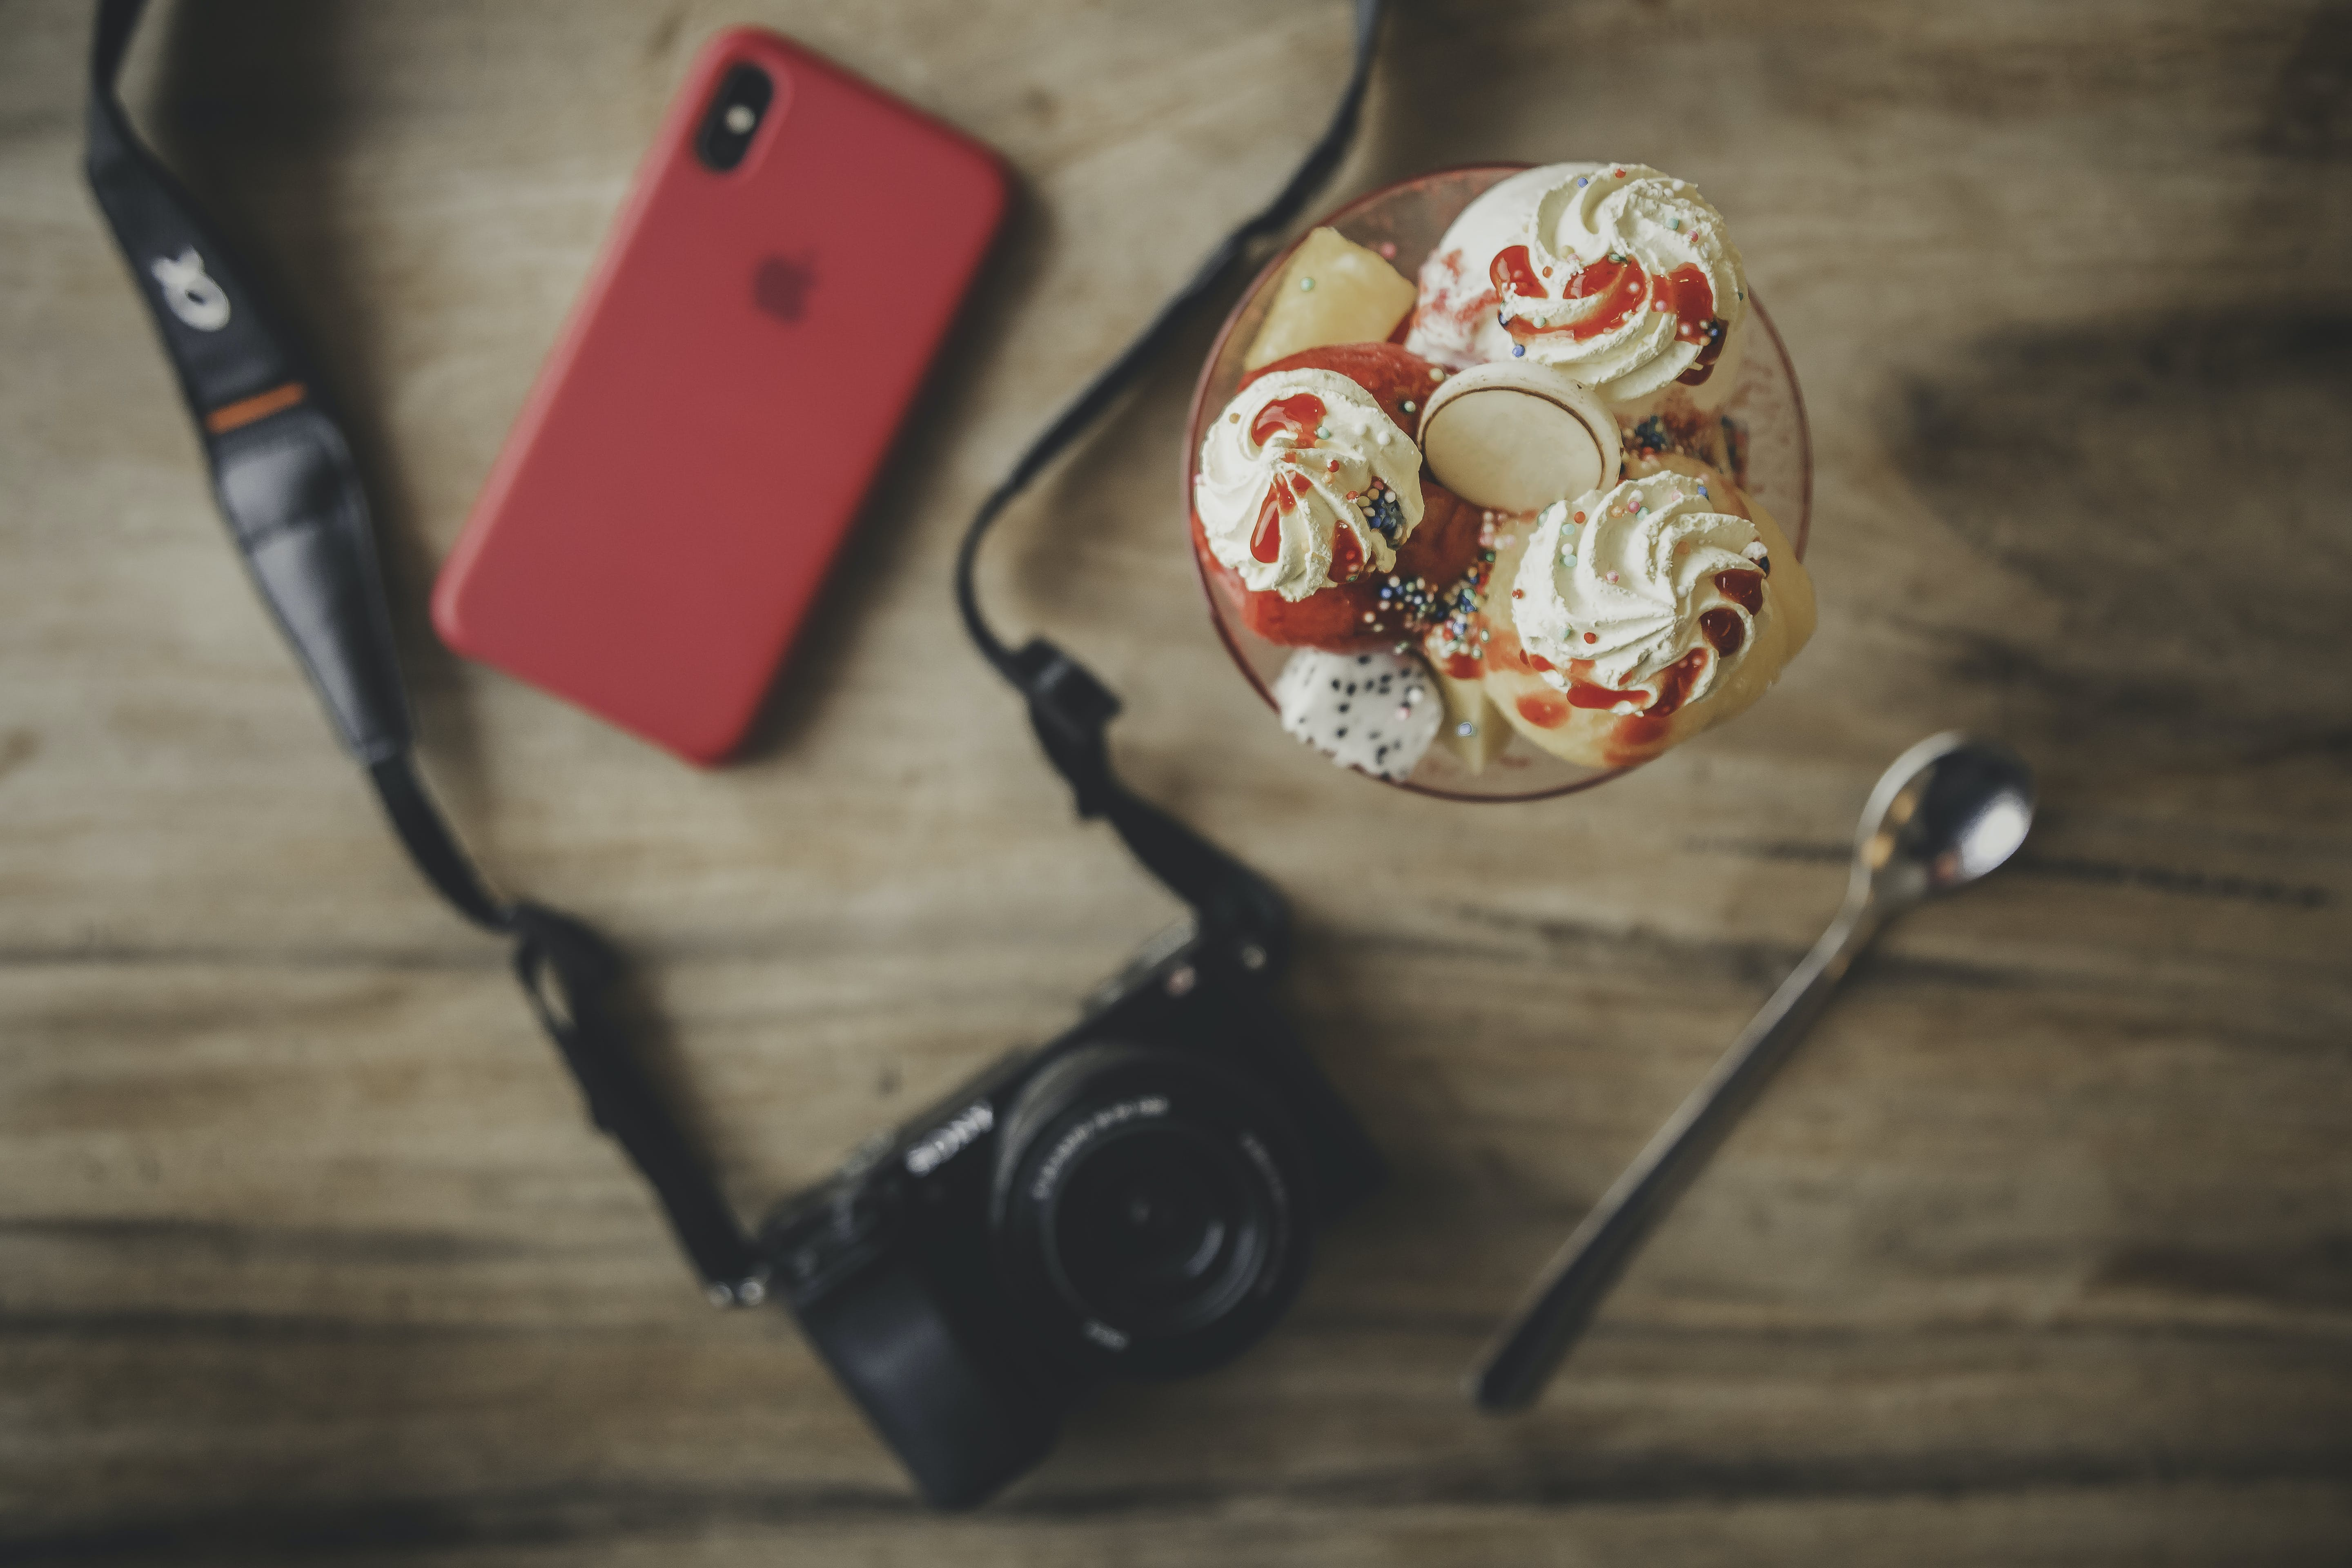 Black Dslr Camera, Teaspoon, Ice Cream and Iphone X